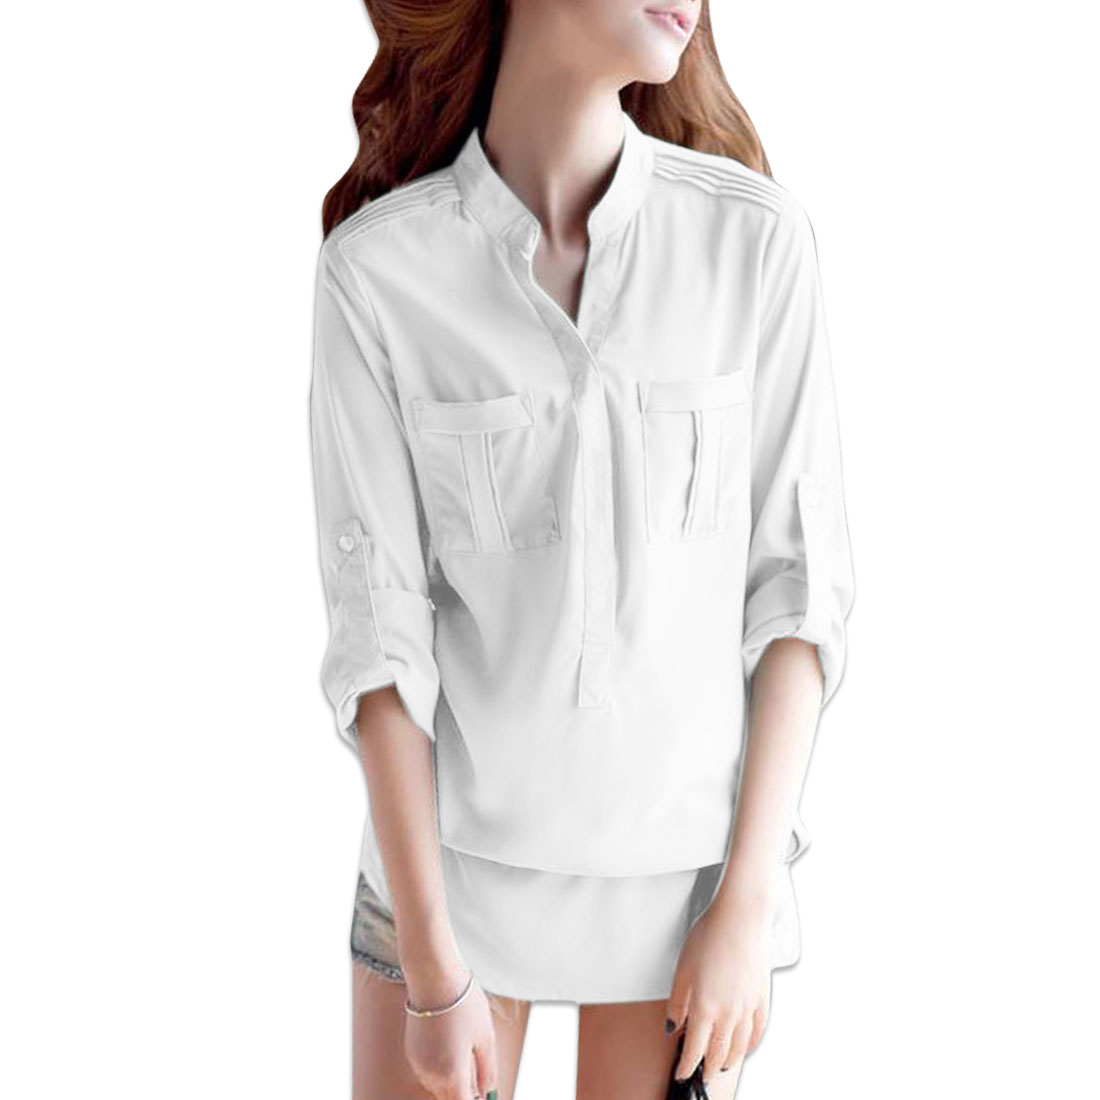 Ladies Breasted Pockets Buttons Front Stand Collar Shirt White S